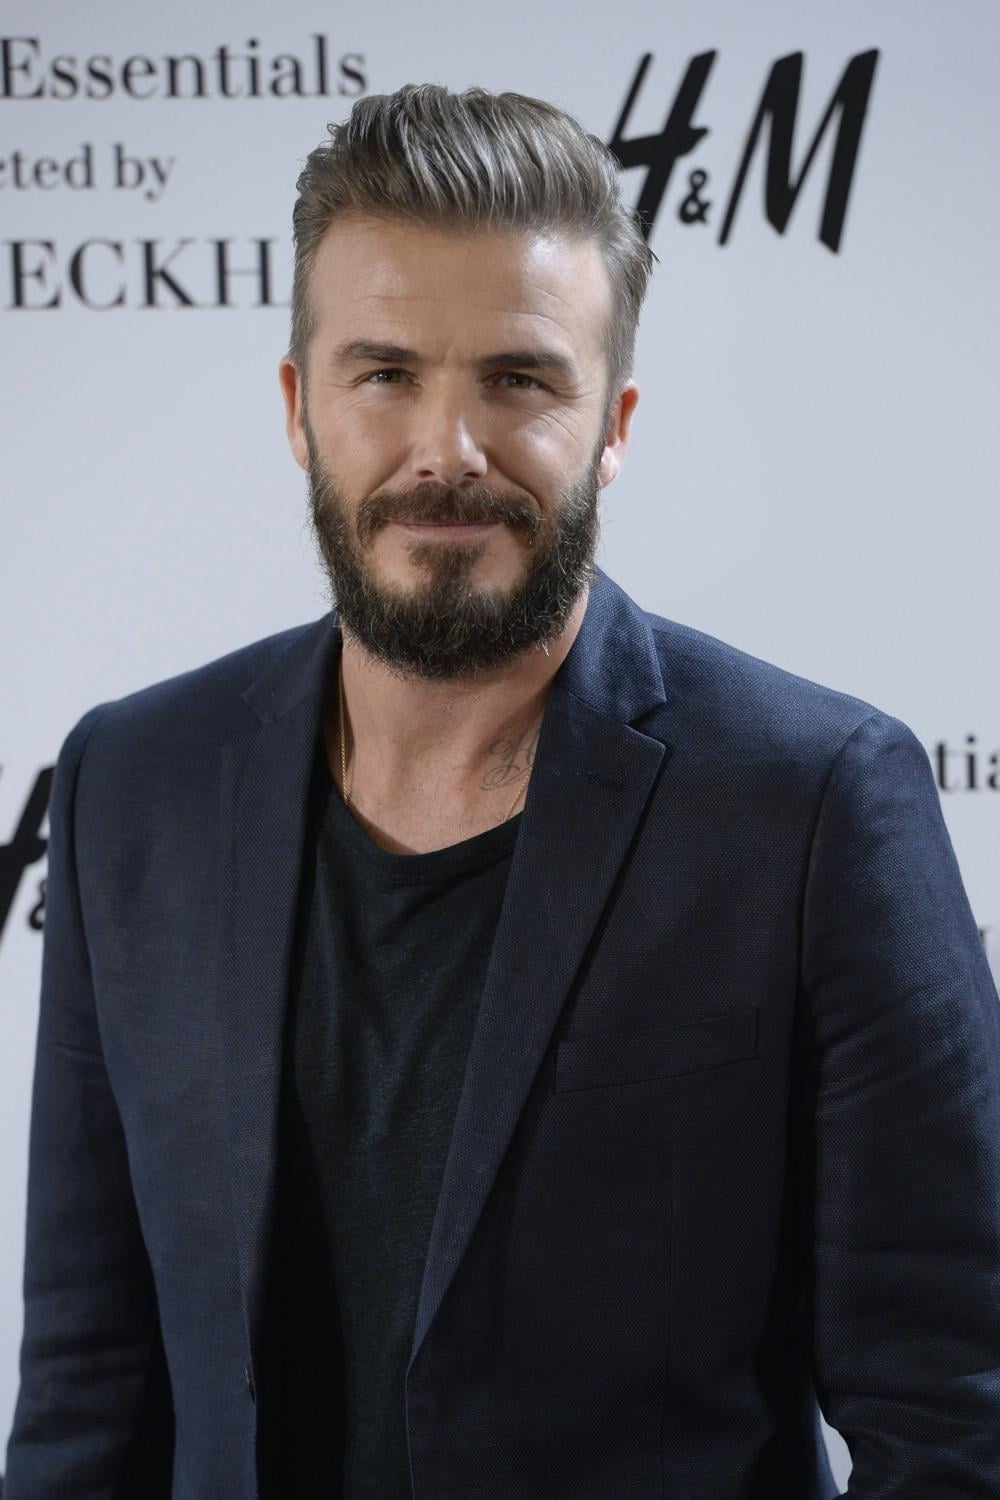 David Beckham Profile Images The Movie Database Tmdb